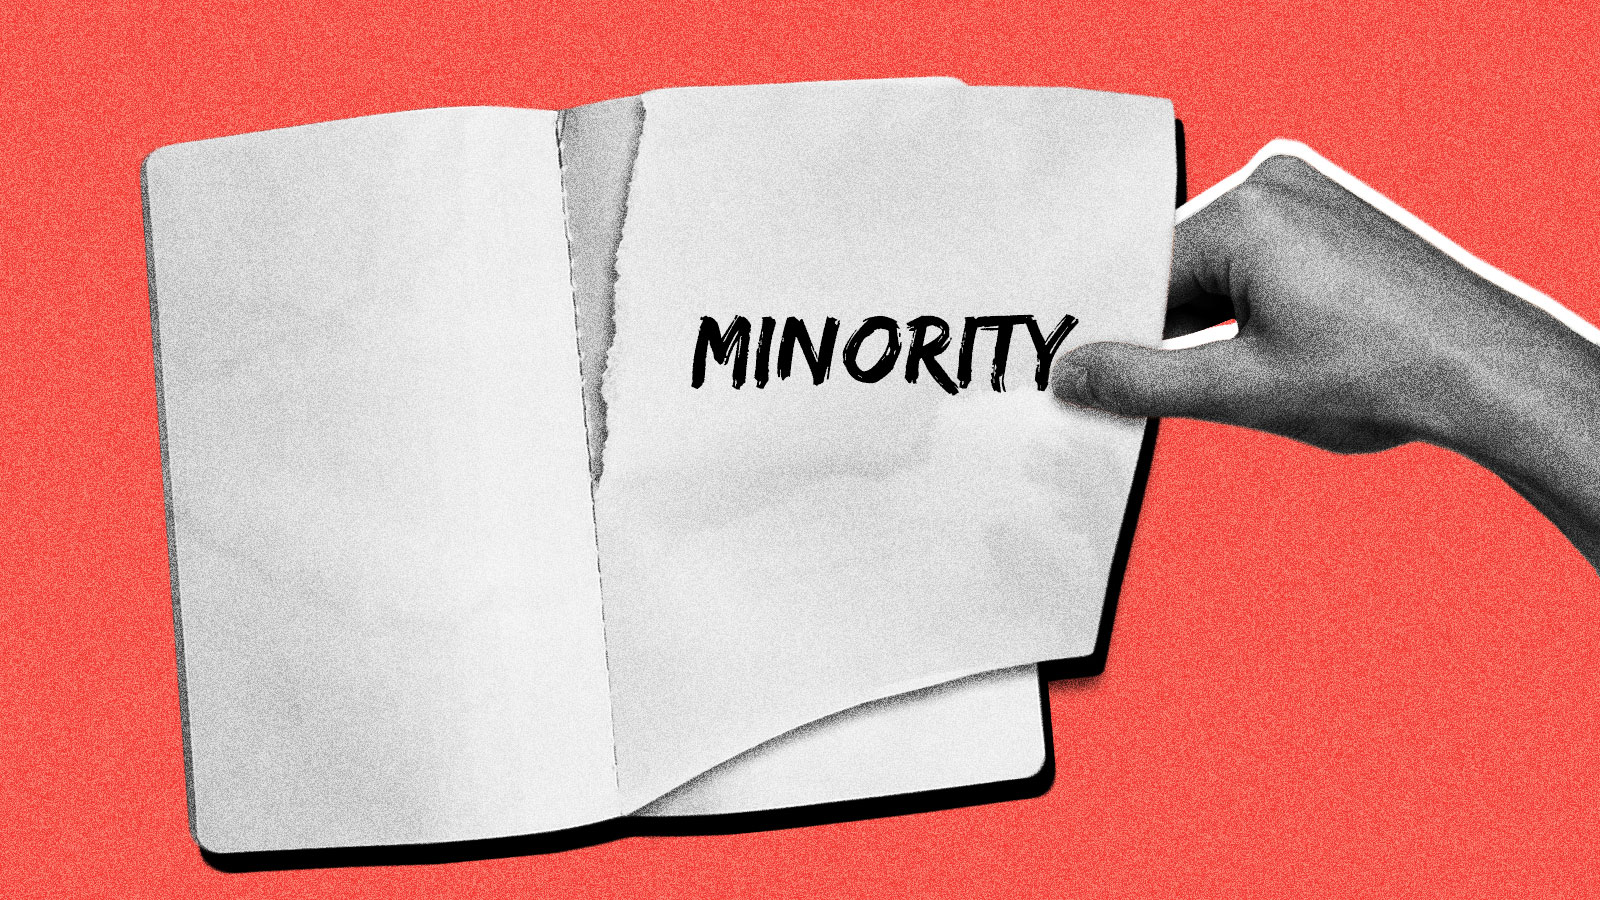 ripping 'minority' out of the dictionary